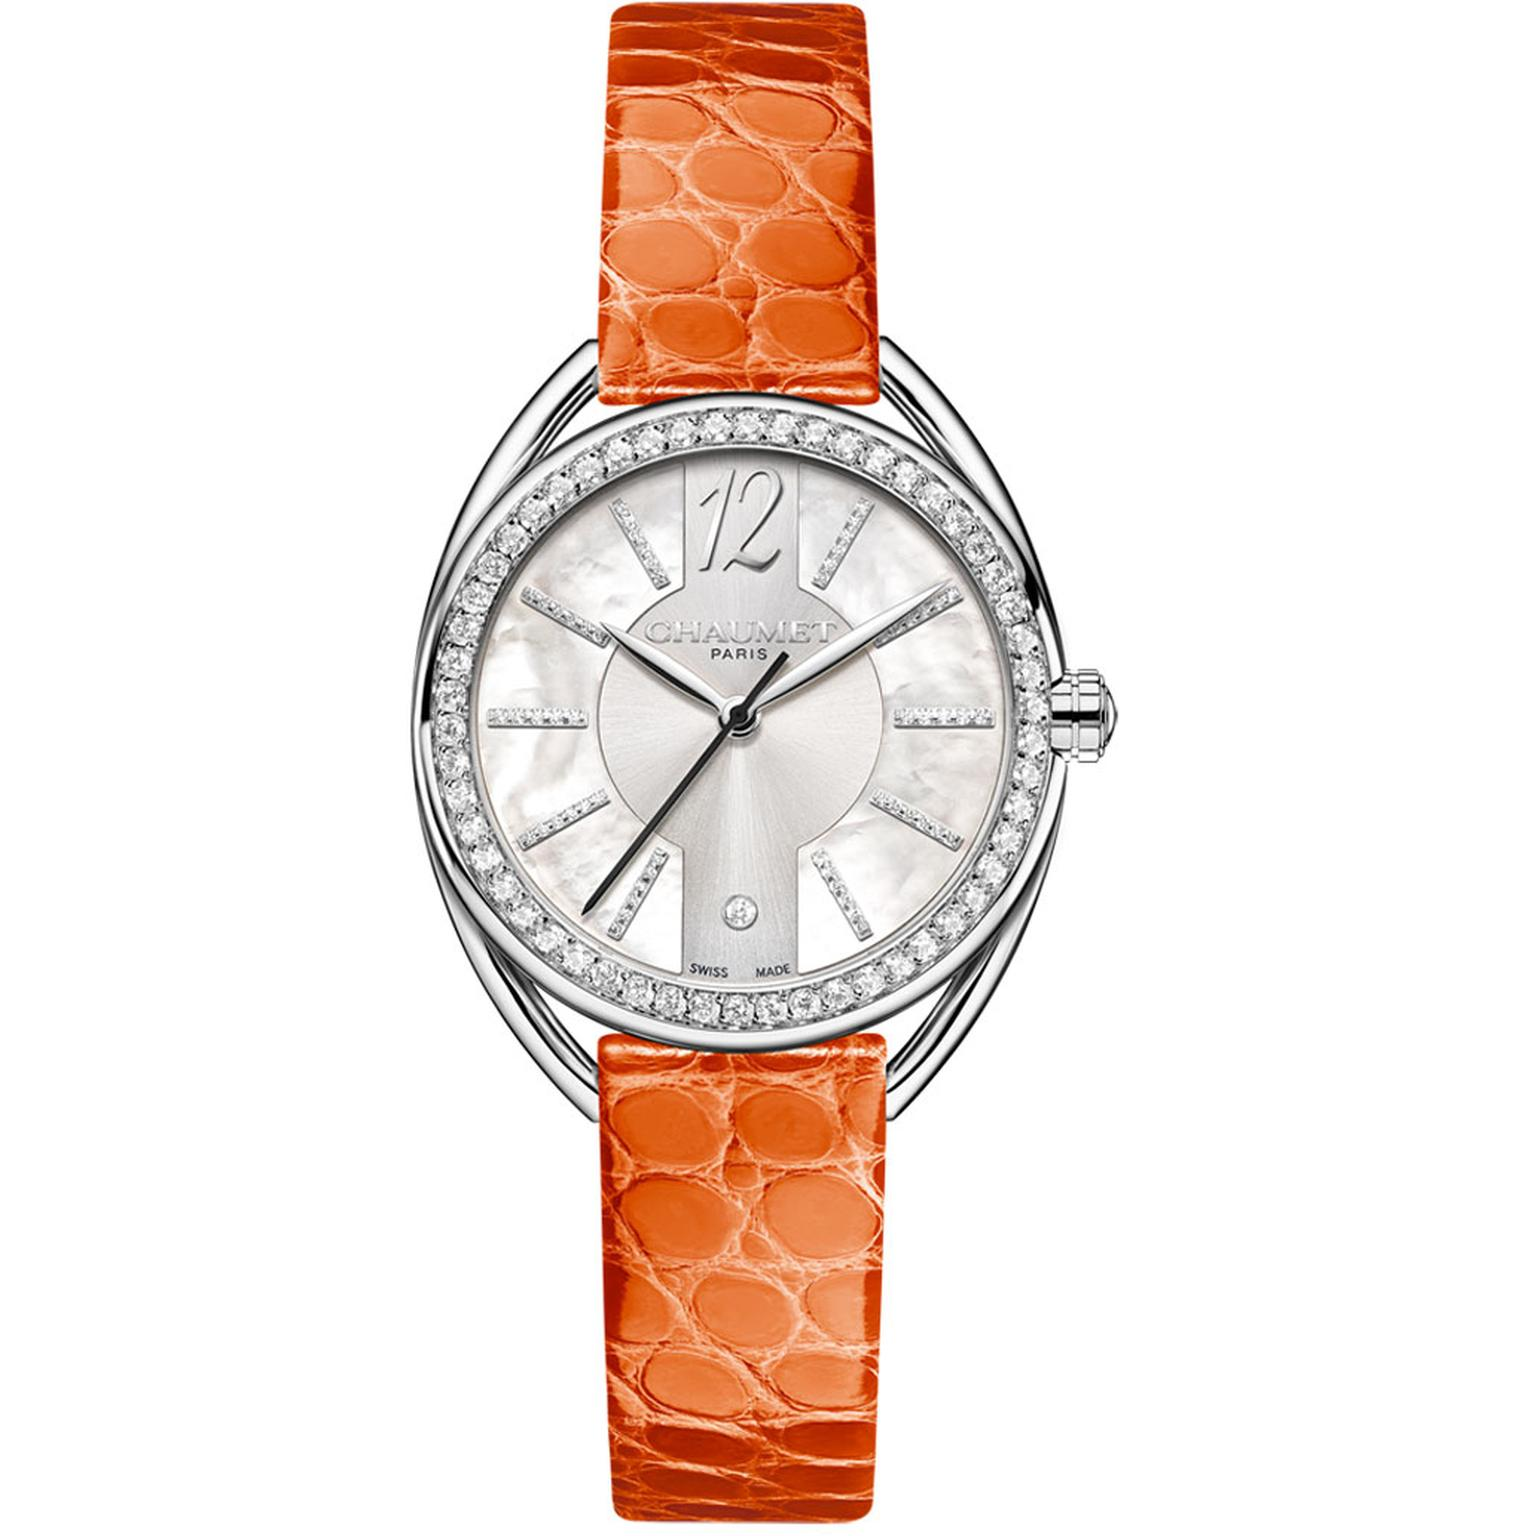 Chaumet Liens Lumière watch 27mm in steel with orange strap